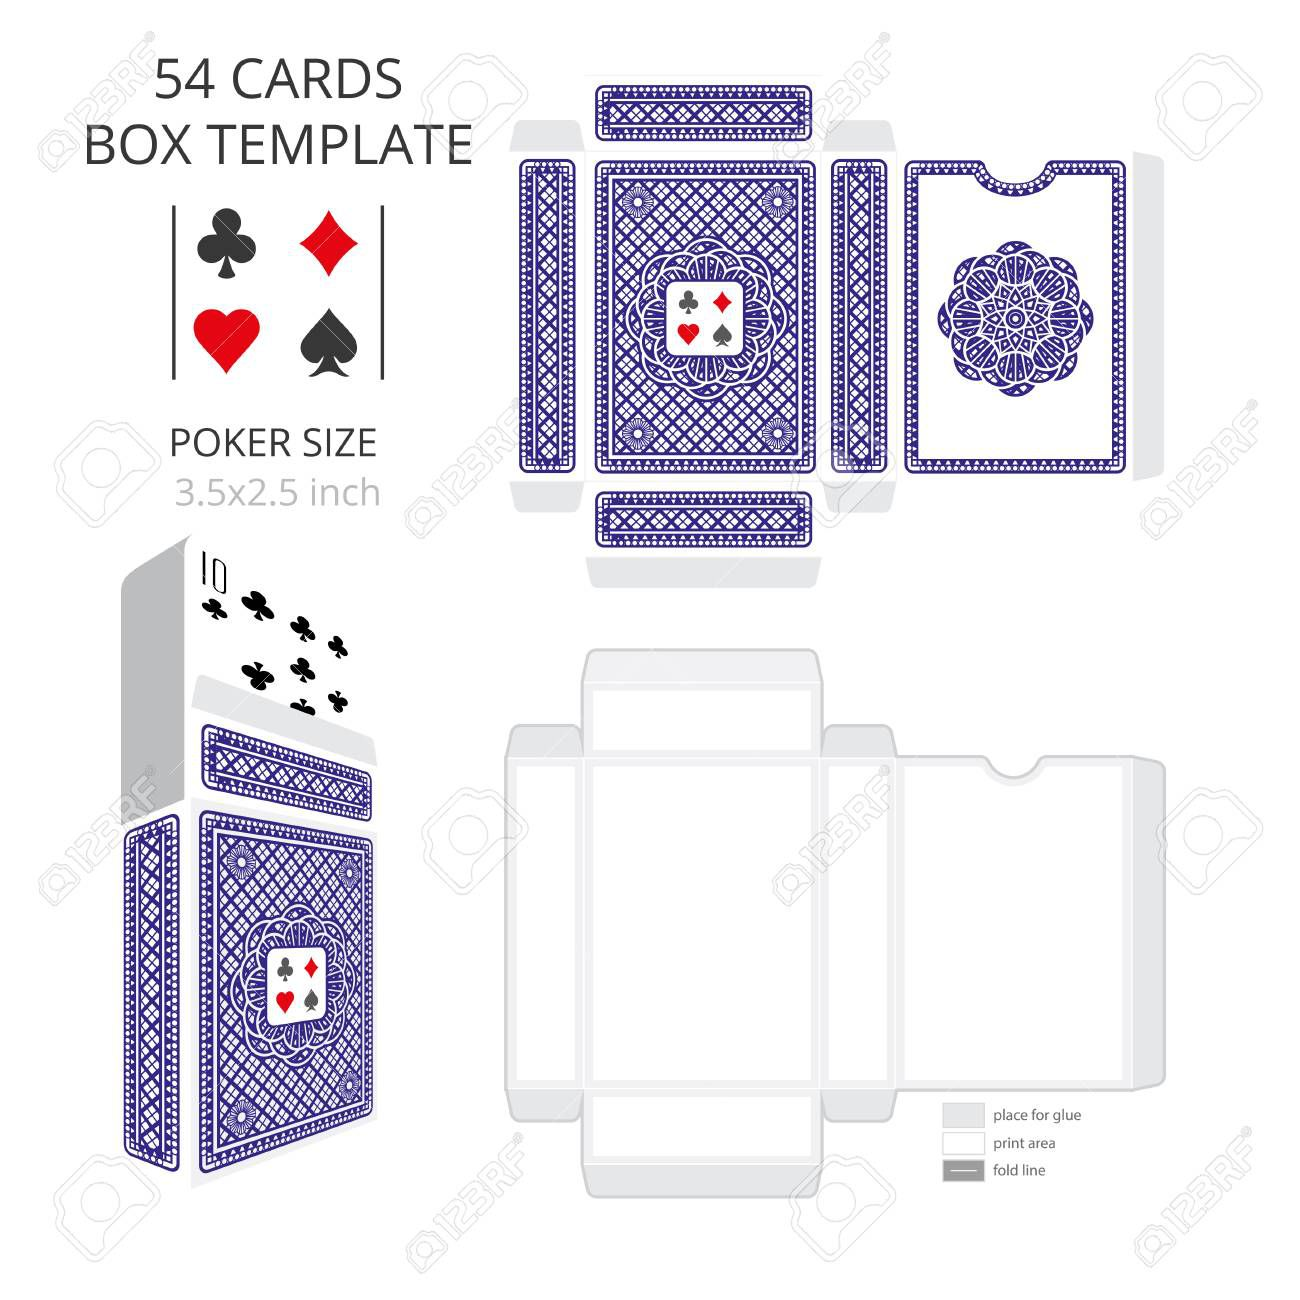 003 Stunning Playing Card Size Template High Definition  Standard PokerFull